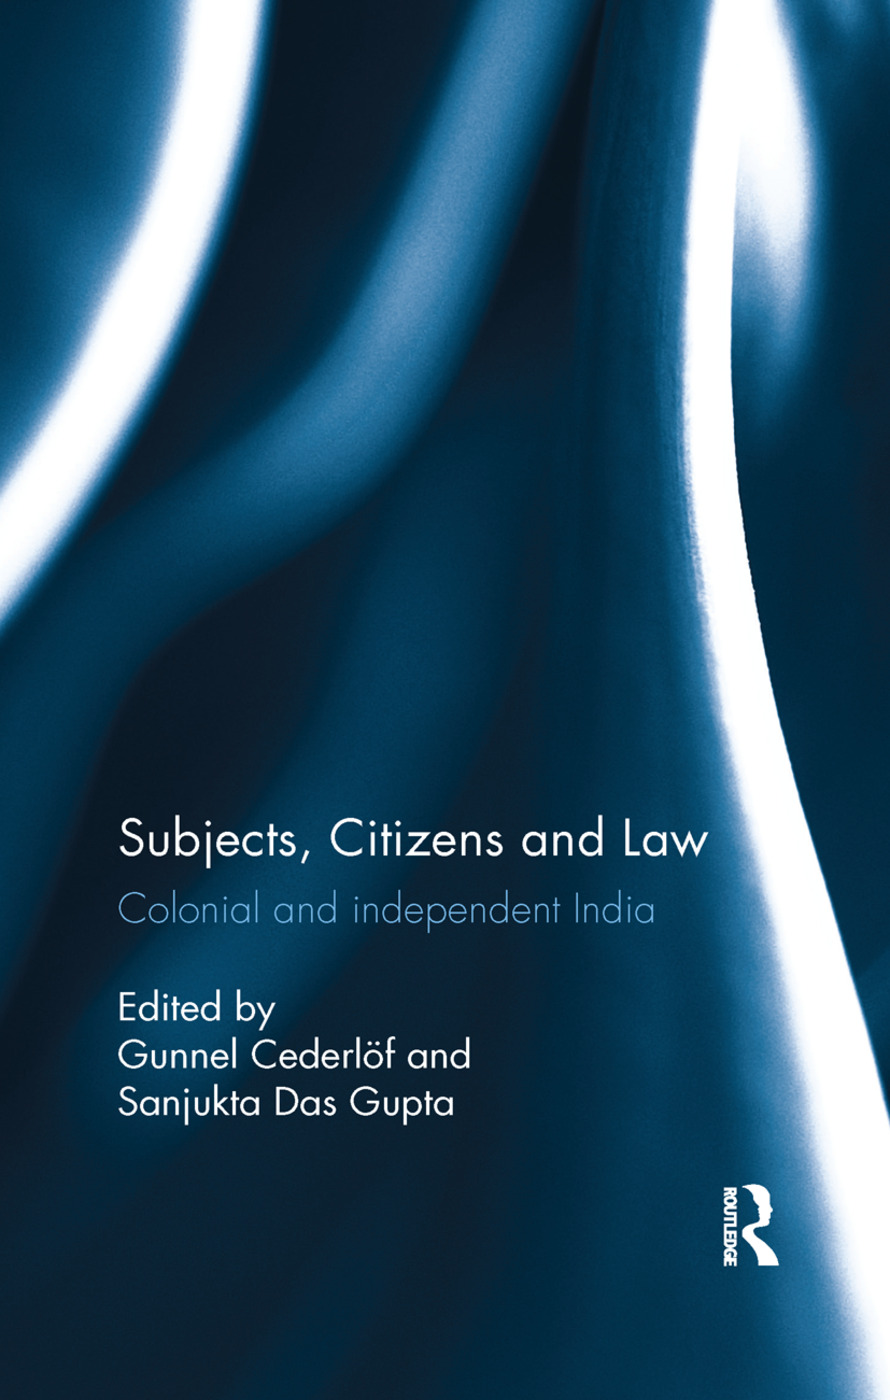 Subjects, Citizens and Law